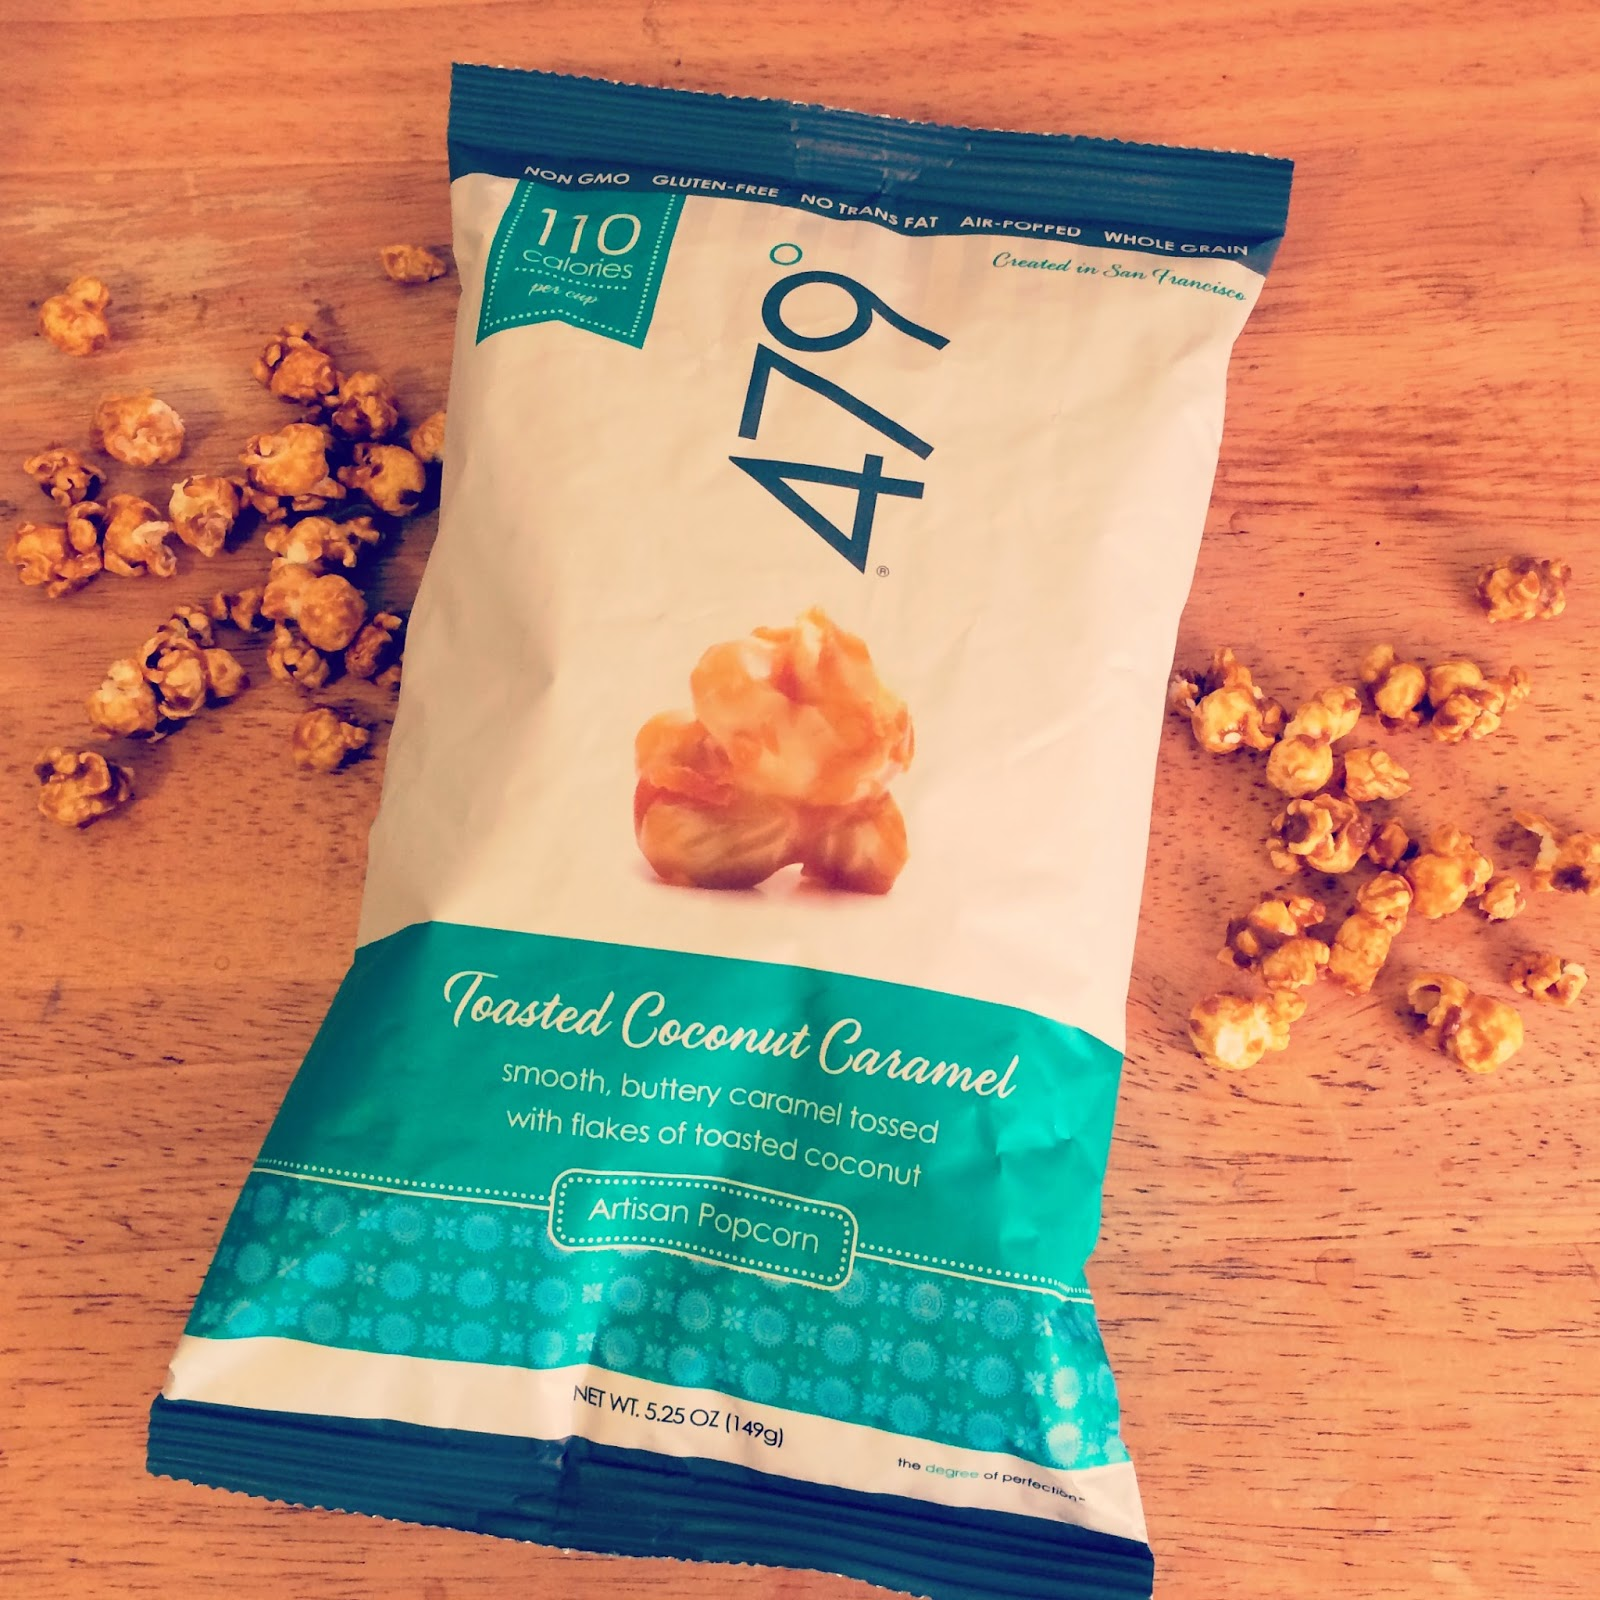 Eating Fabulously, popcorn, caramel, coconut, CVS, NYC, California, Christopher Stewart